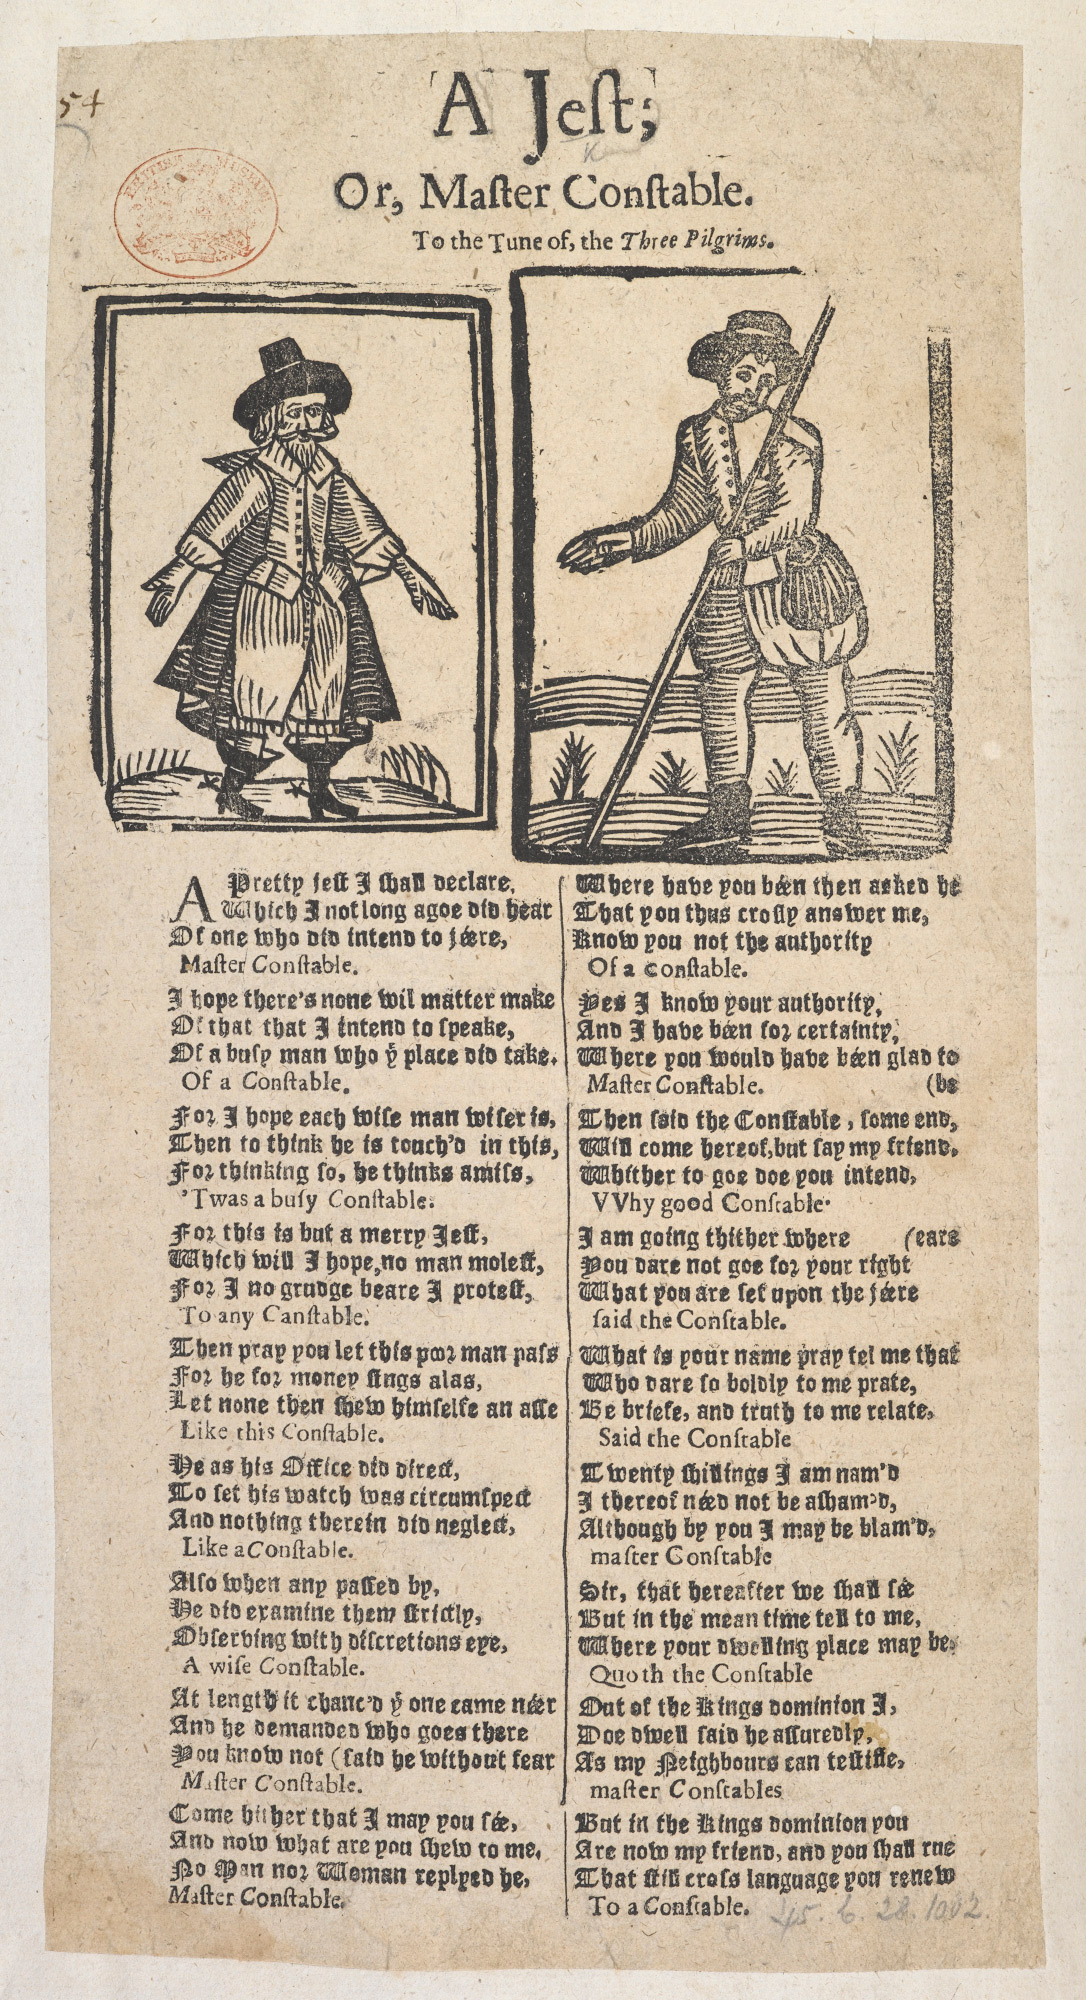 Image of an example broadside ballad. Long page with two wooduct images that each show an illustration of a man. Underneath the images are two columns of the ballad text.